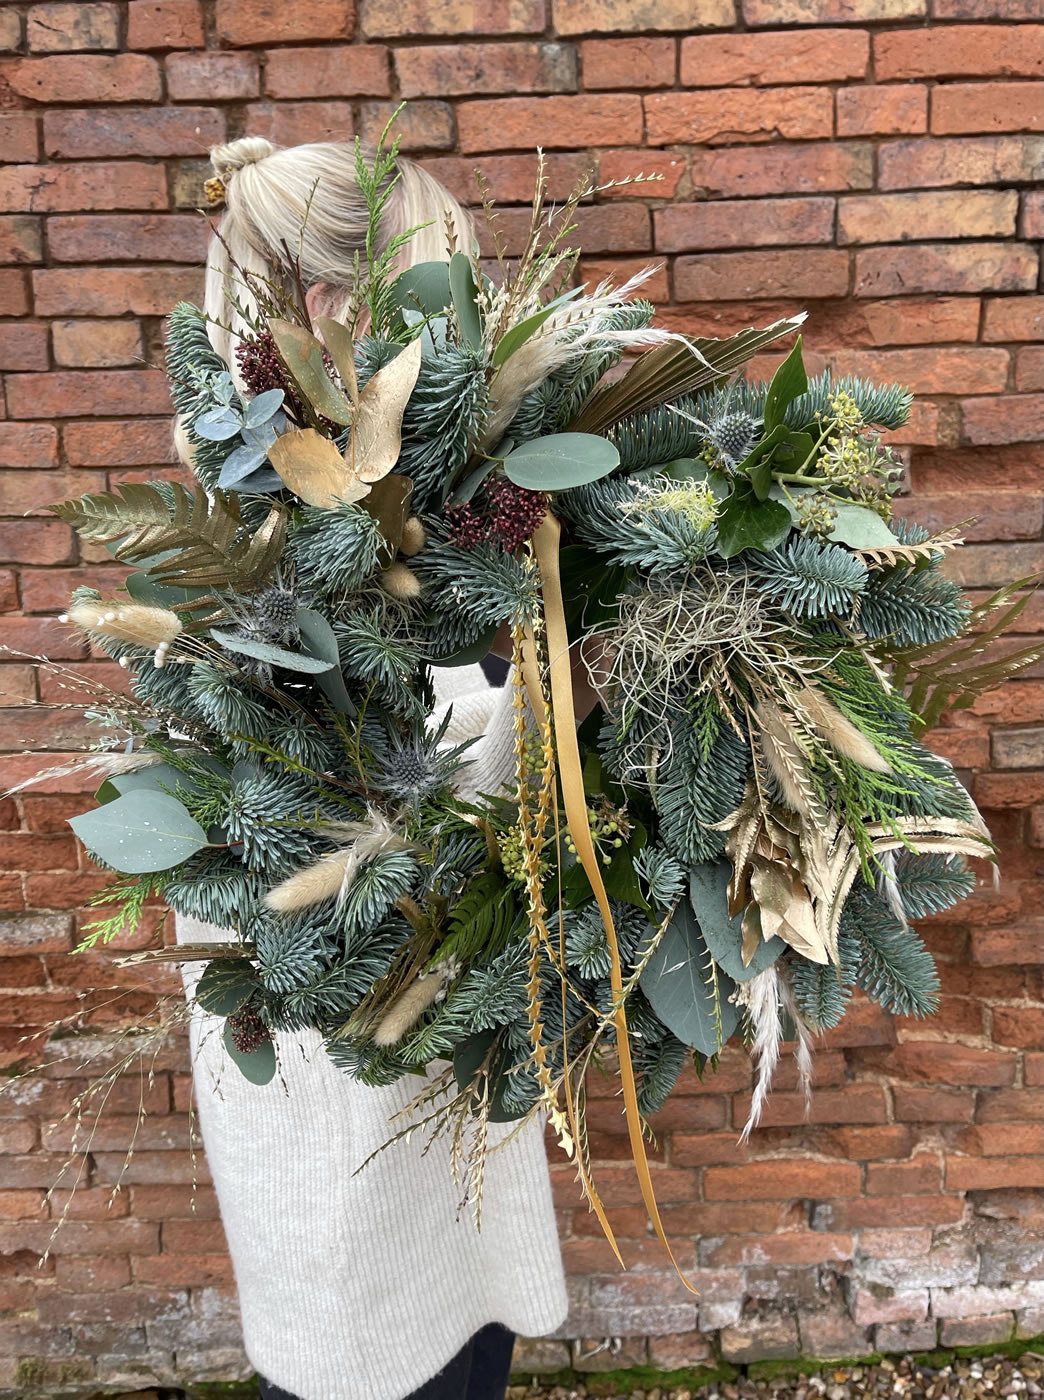 Wreath workshops at The Flower House